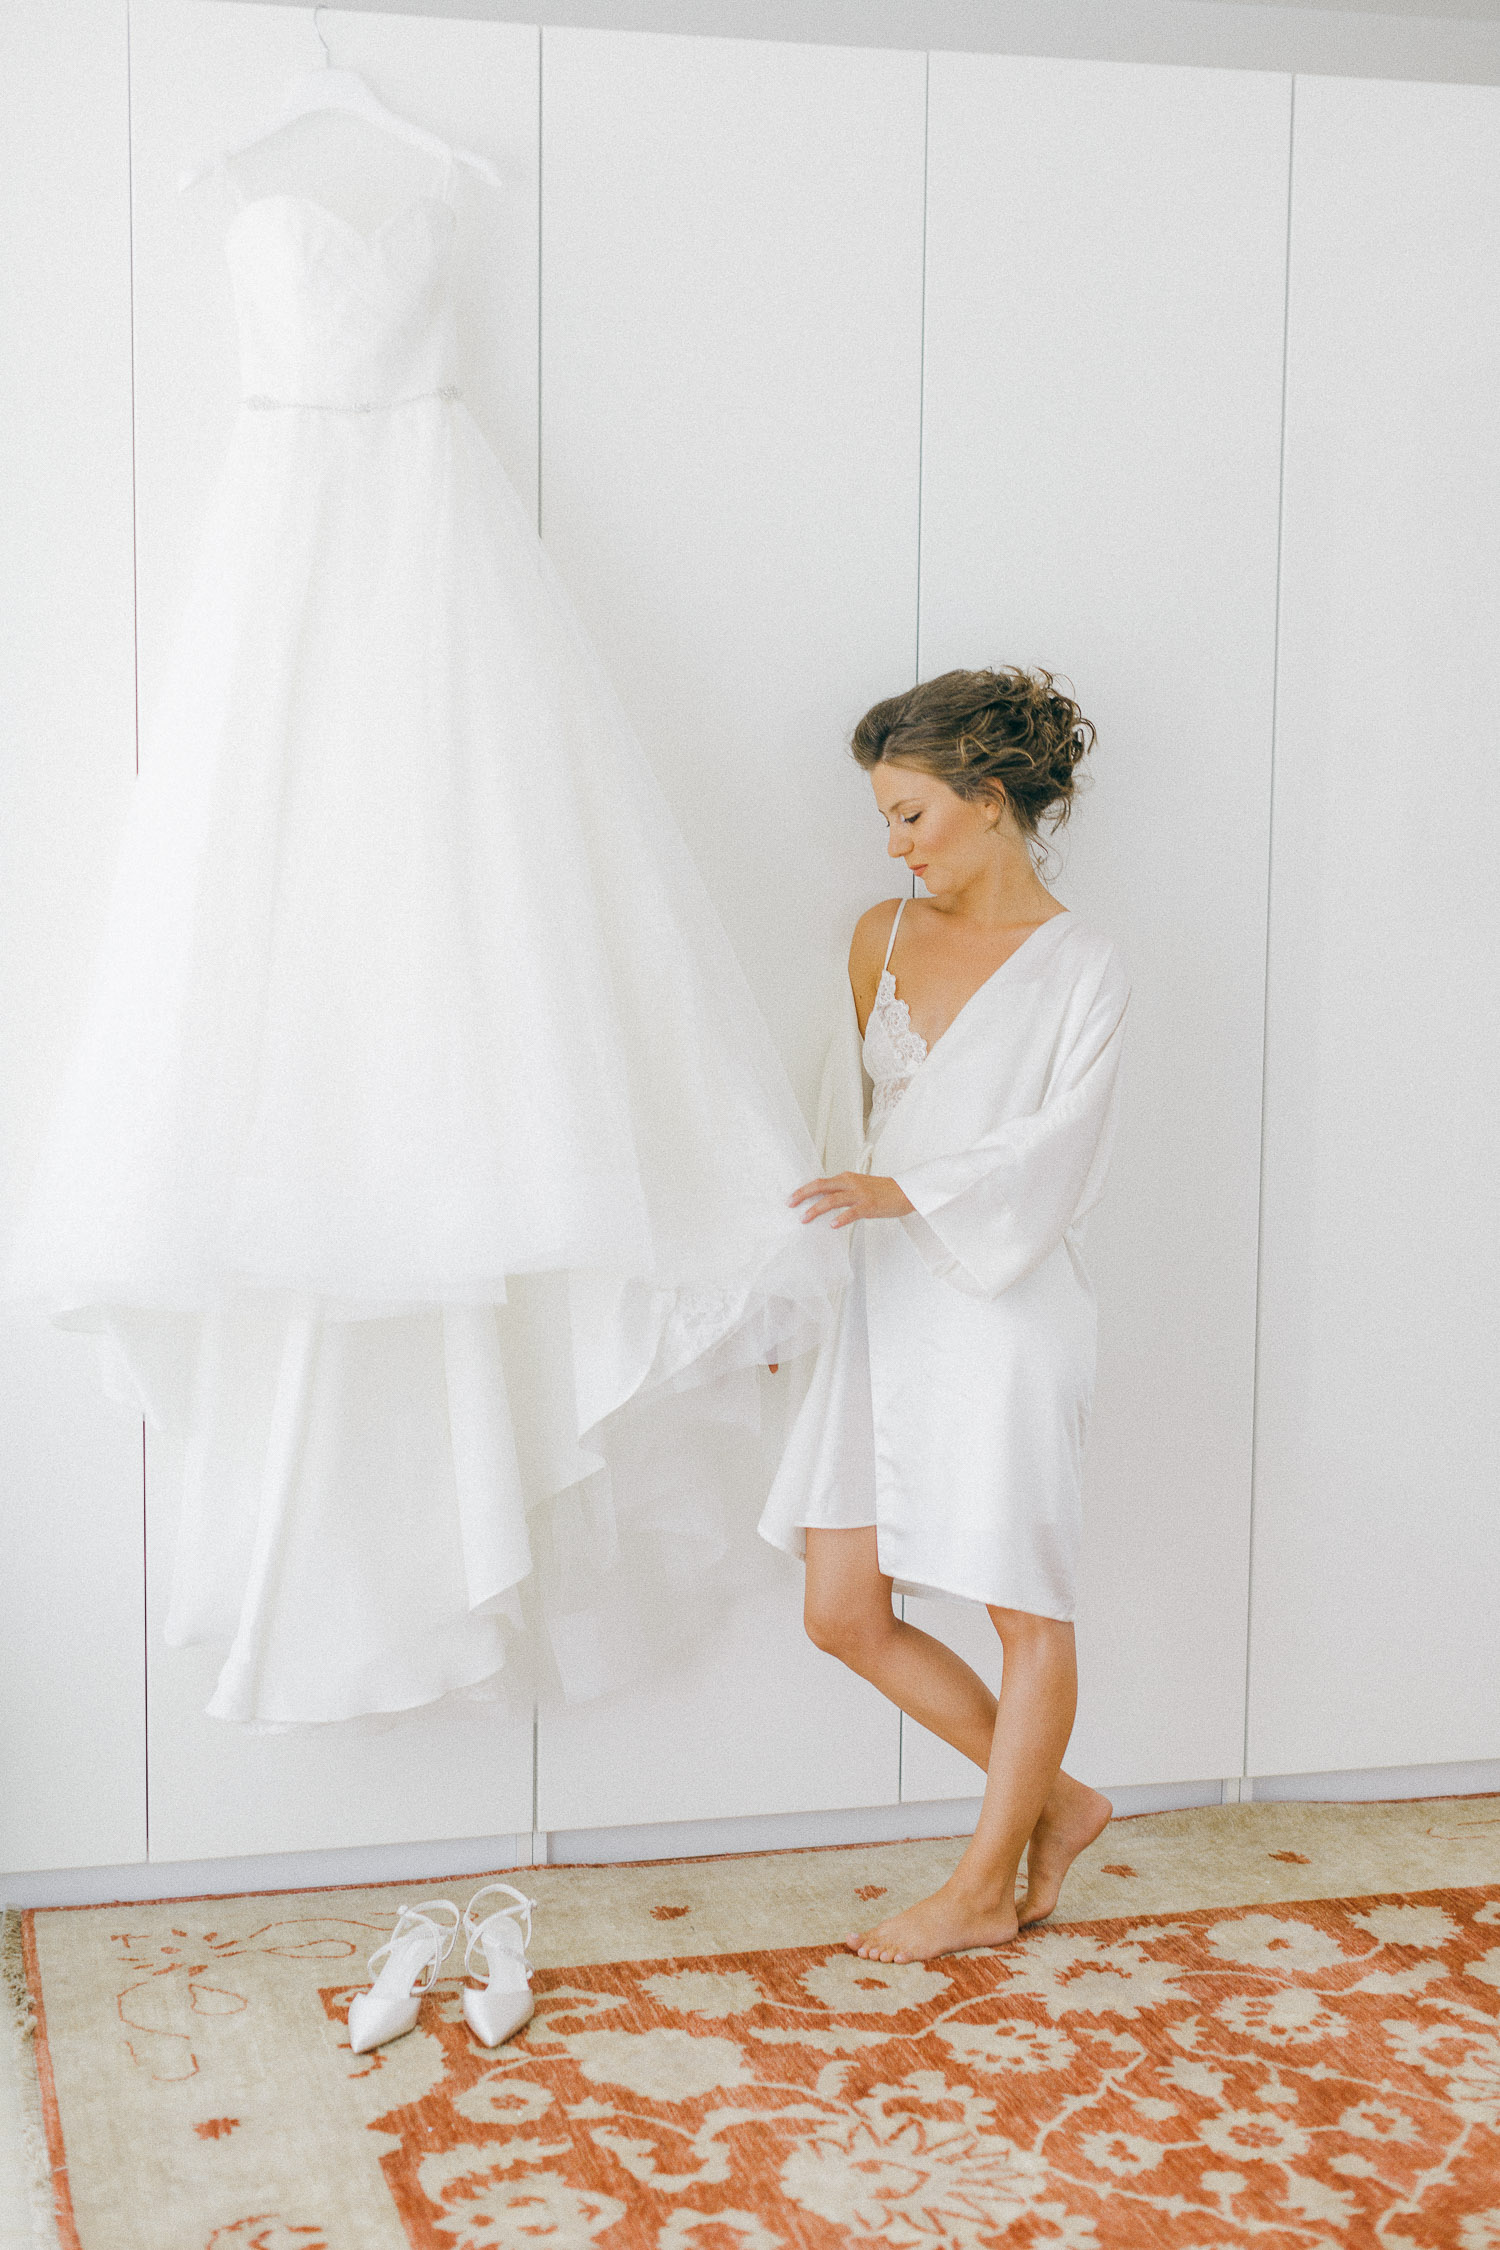 Our stunning bride preparation at an Old World micro wedding in Corfu